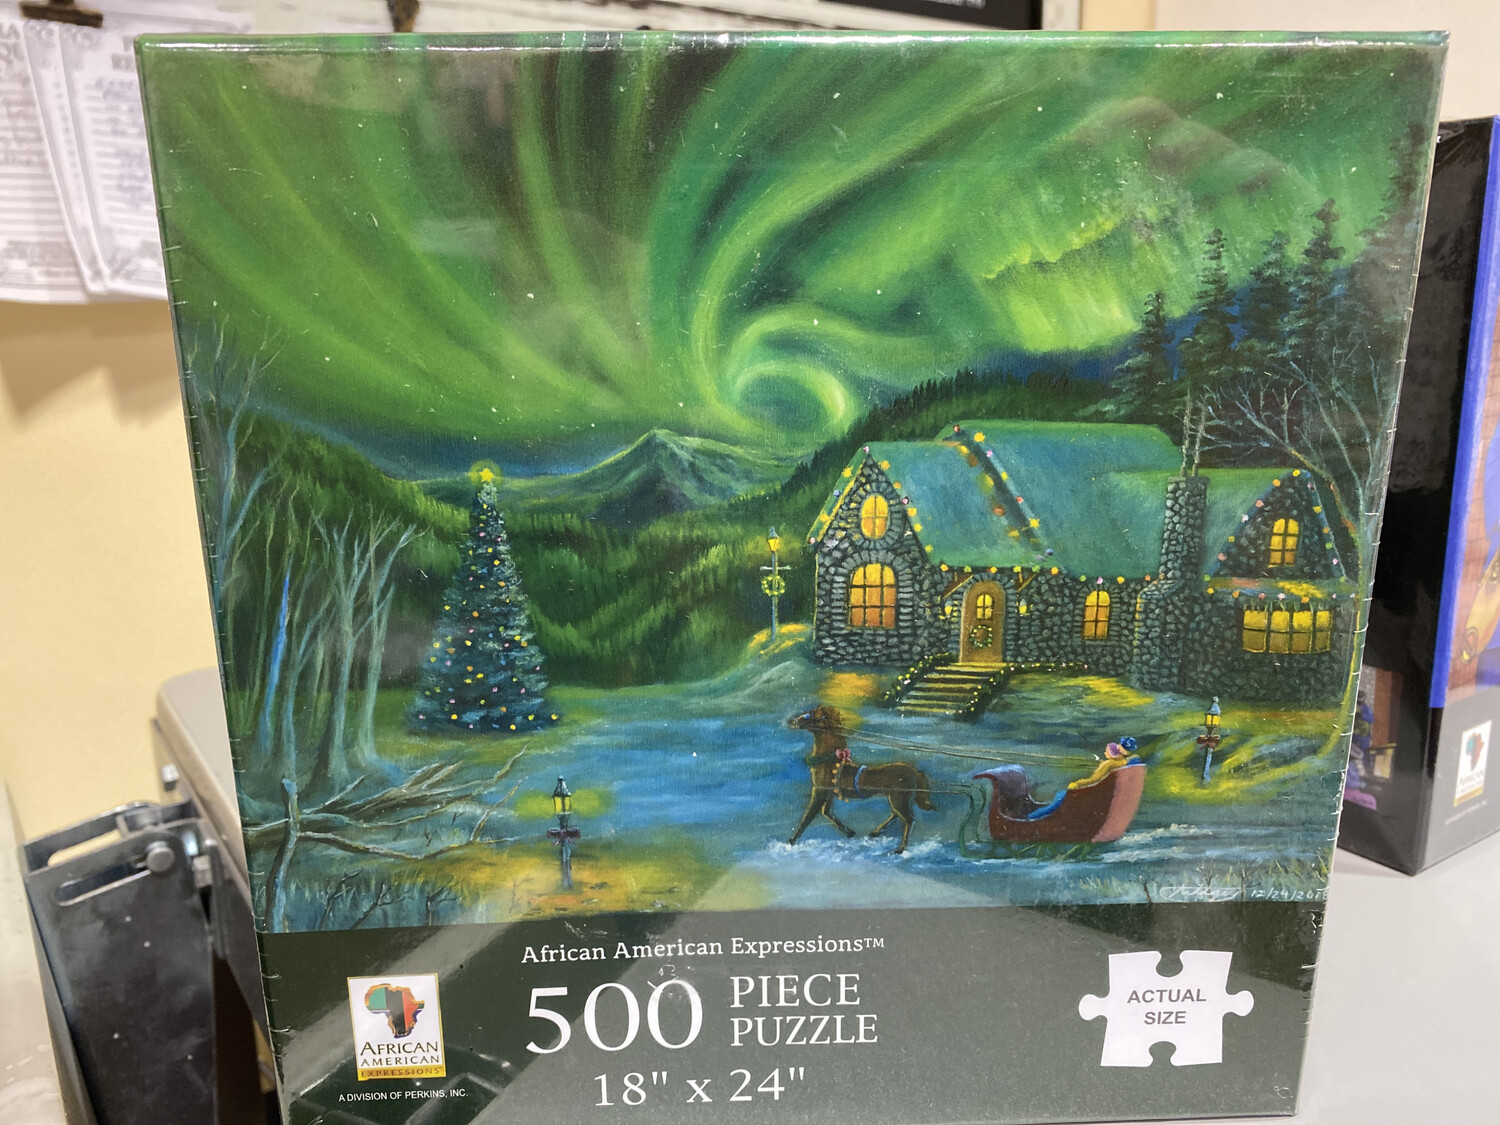 Northern Lights, 500 Piece Puzzle